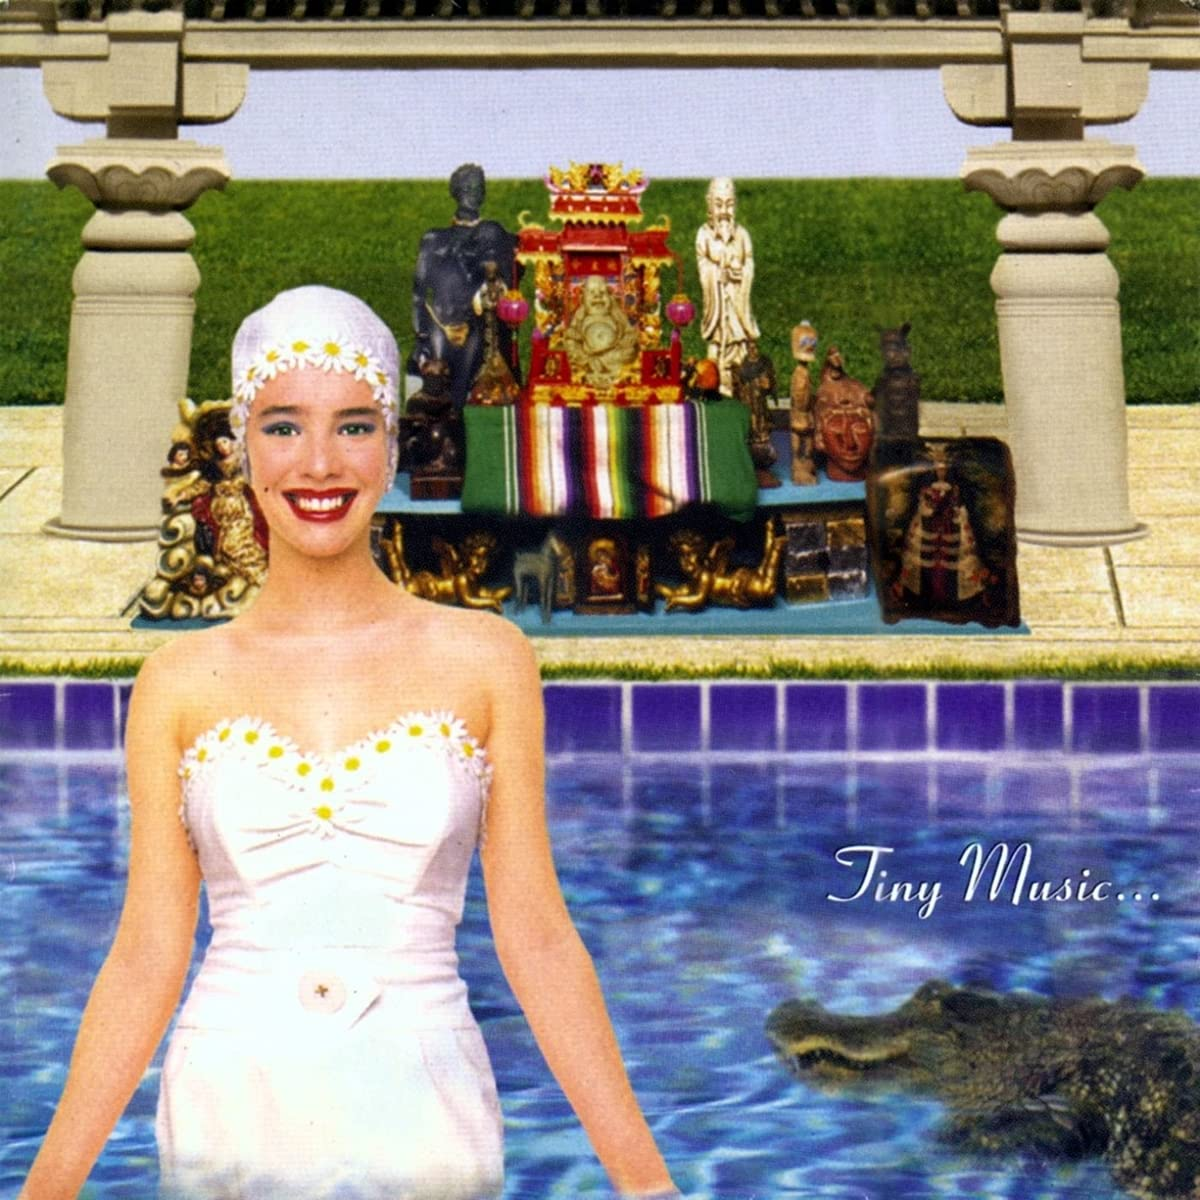 Stone Temple Pilots - Tiny Music... Songs From The Vatican Gift Shop (2021) [FLAC] Download